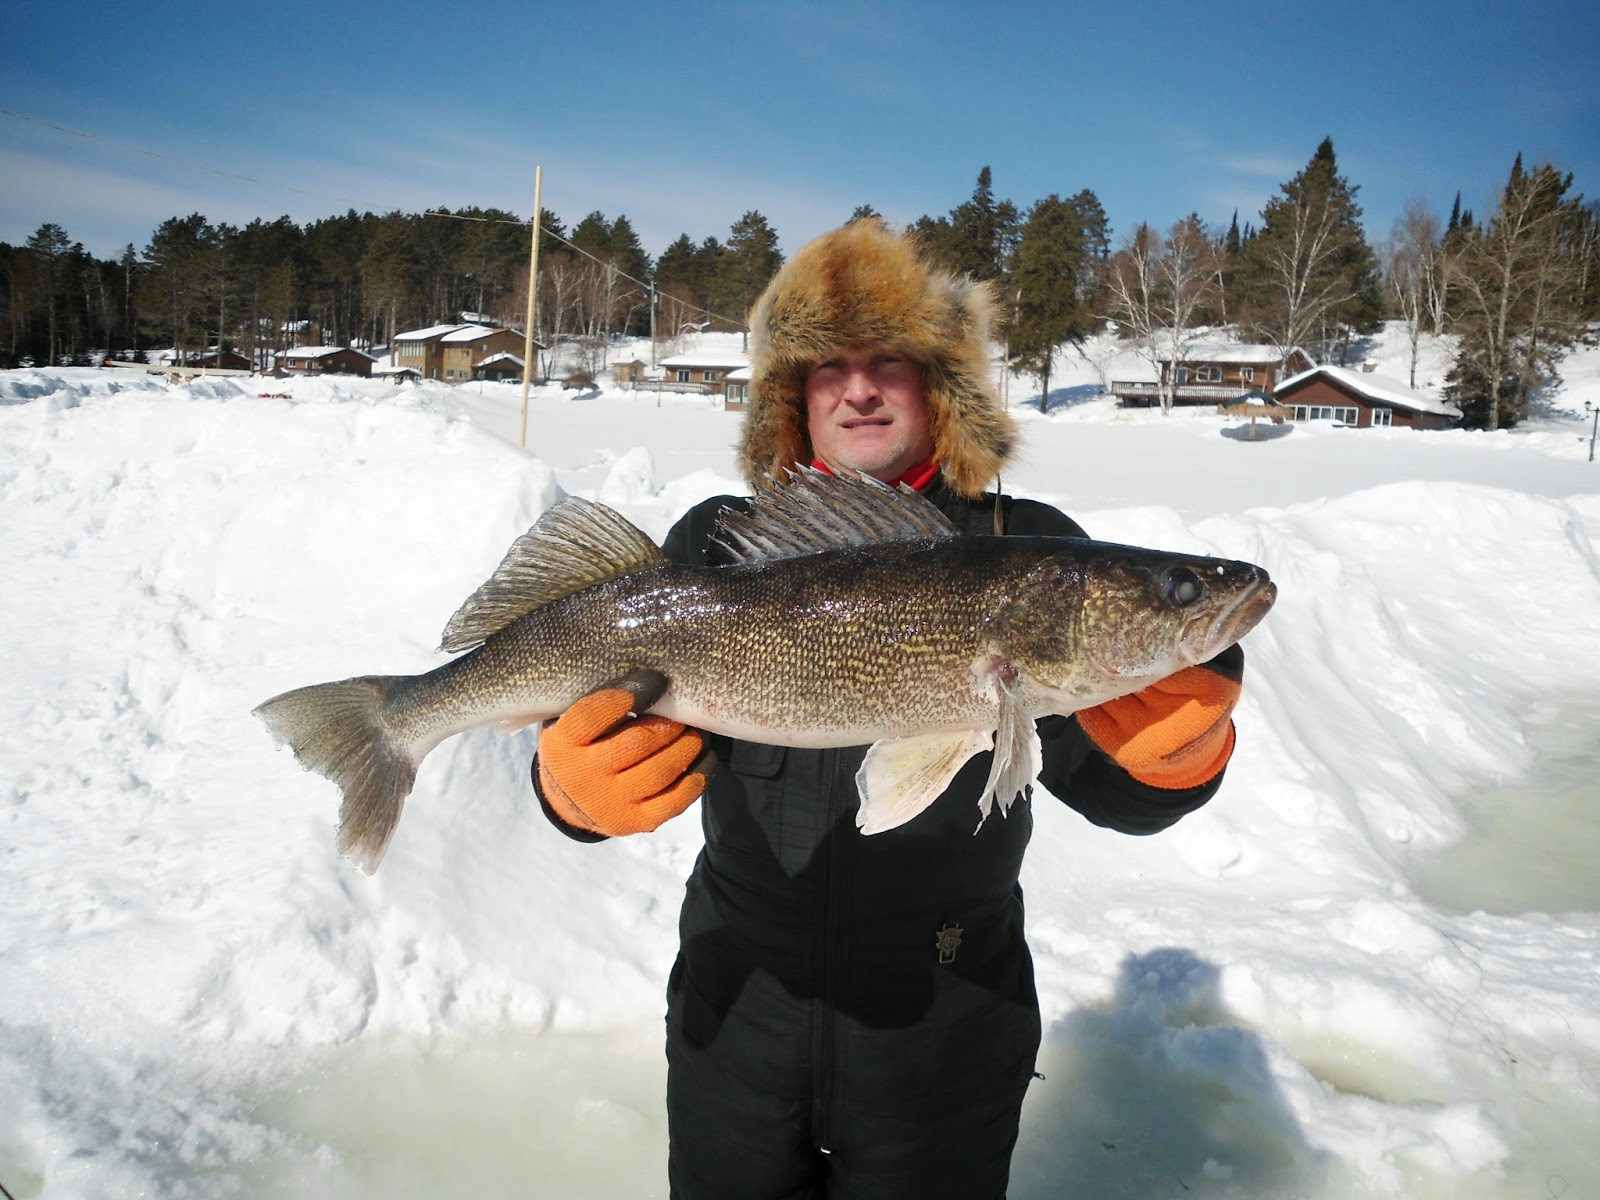 walleye fishing ontario, ice fishing